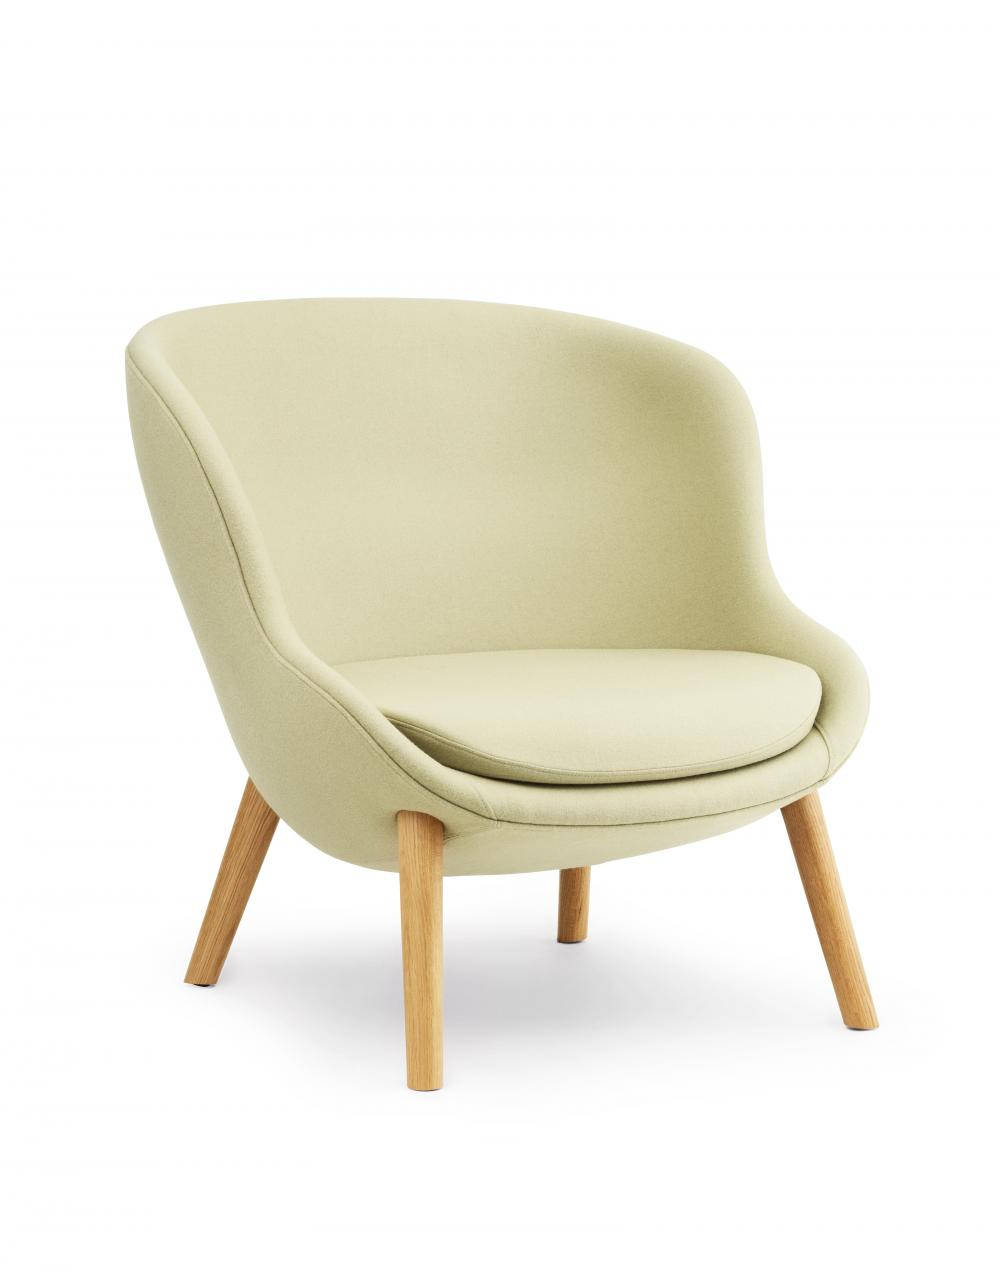 Hyg lounge chair - low